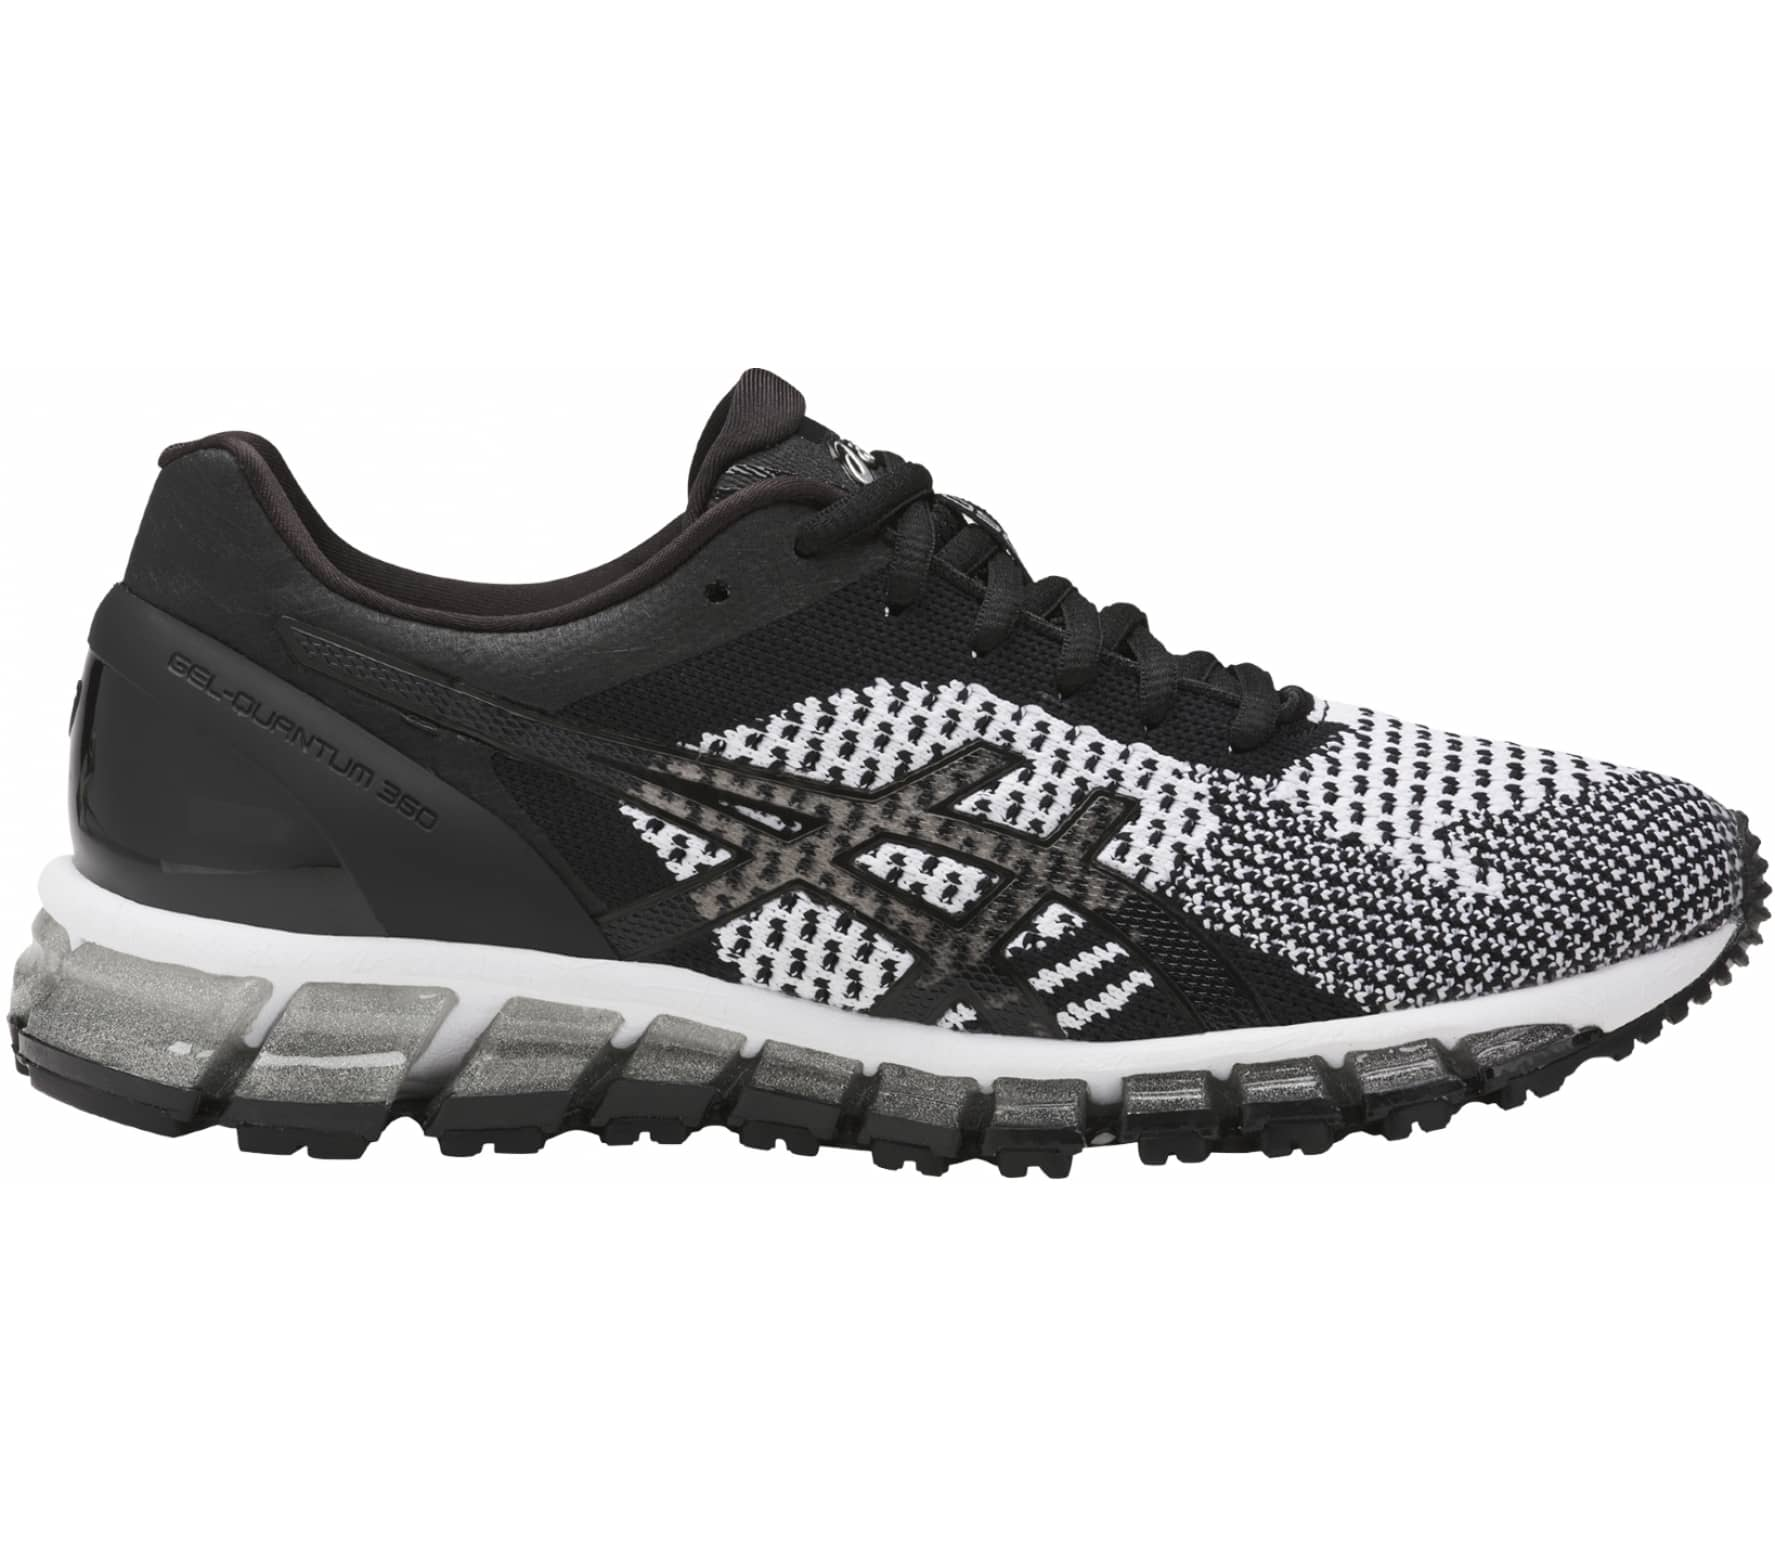 new style 6bee8 10d93 Asics - Gel-Quantum 360 Knit women s running shoes (black white)